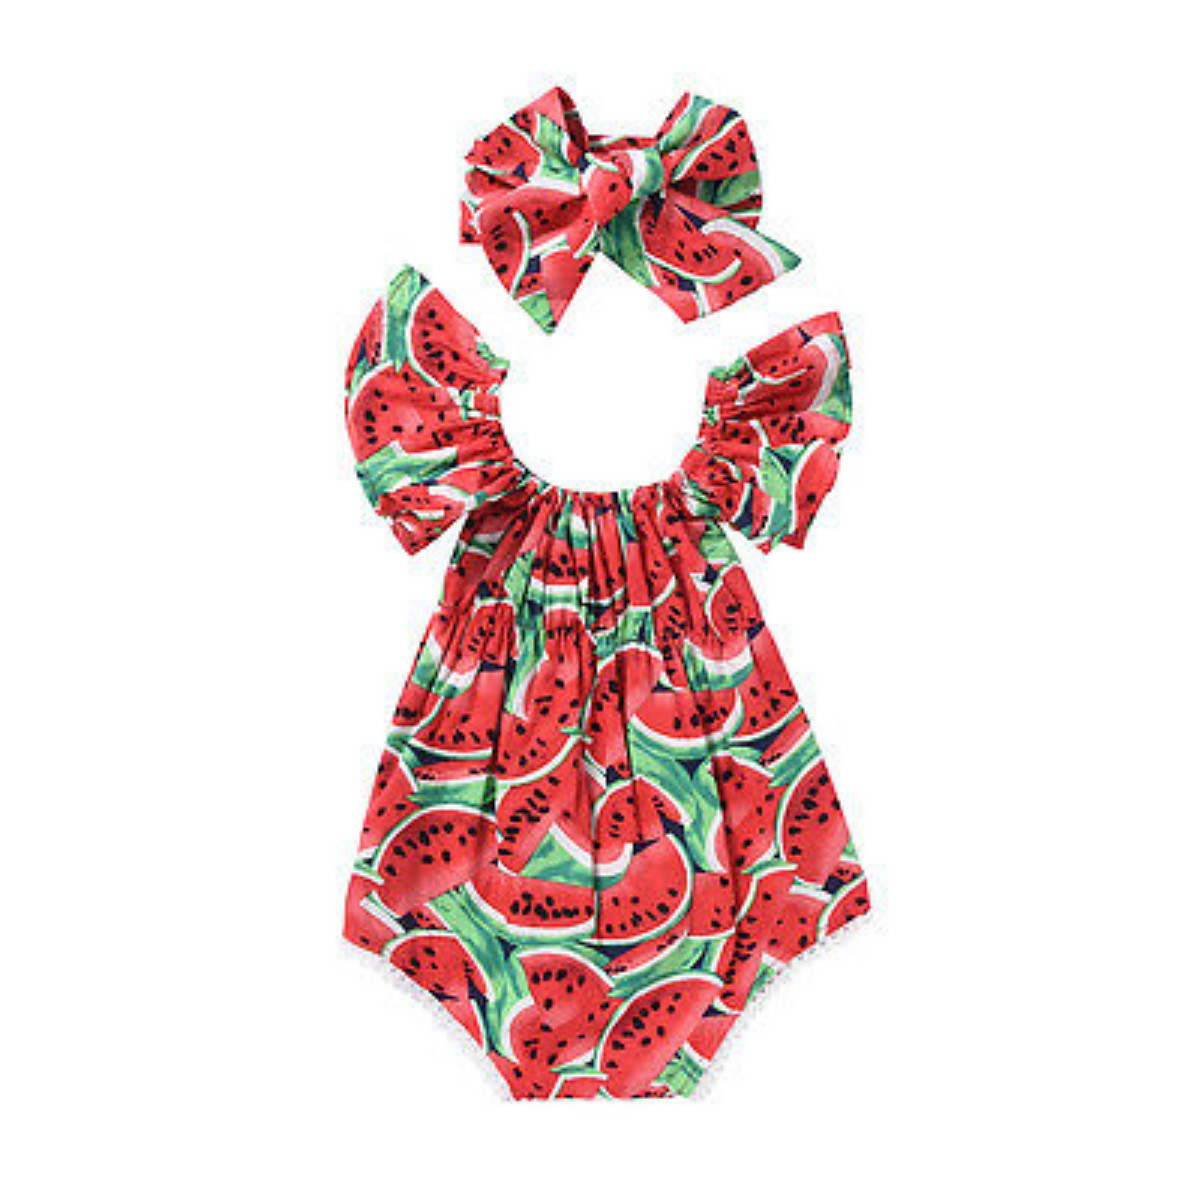 b309e47b0543 Detail Feedback Questions about Newborn Baby Girls Watermelon Print Clothes  Short Sleeve Bodysuit +Headband 2pcs Jumpsuit Outfits Playsuit on  Aliexpress.com ...